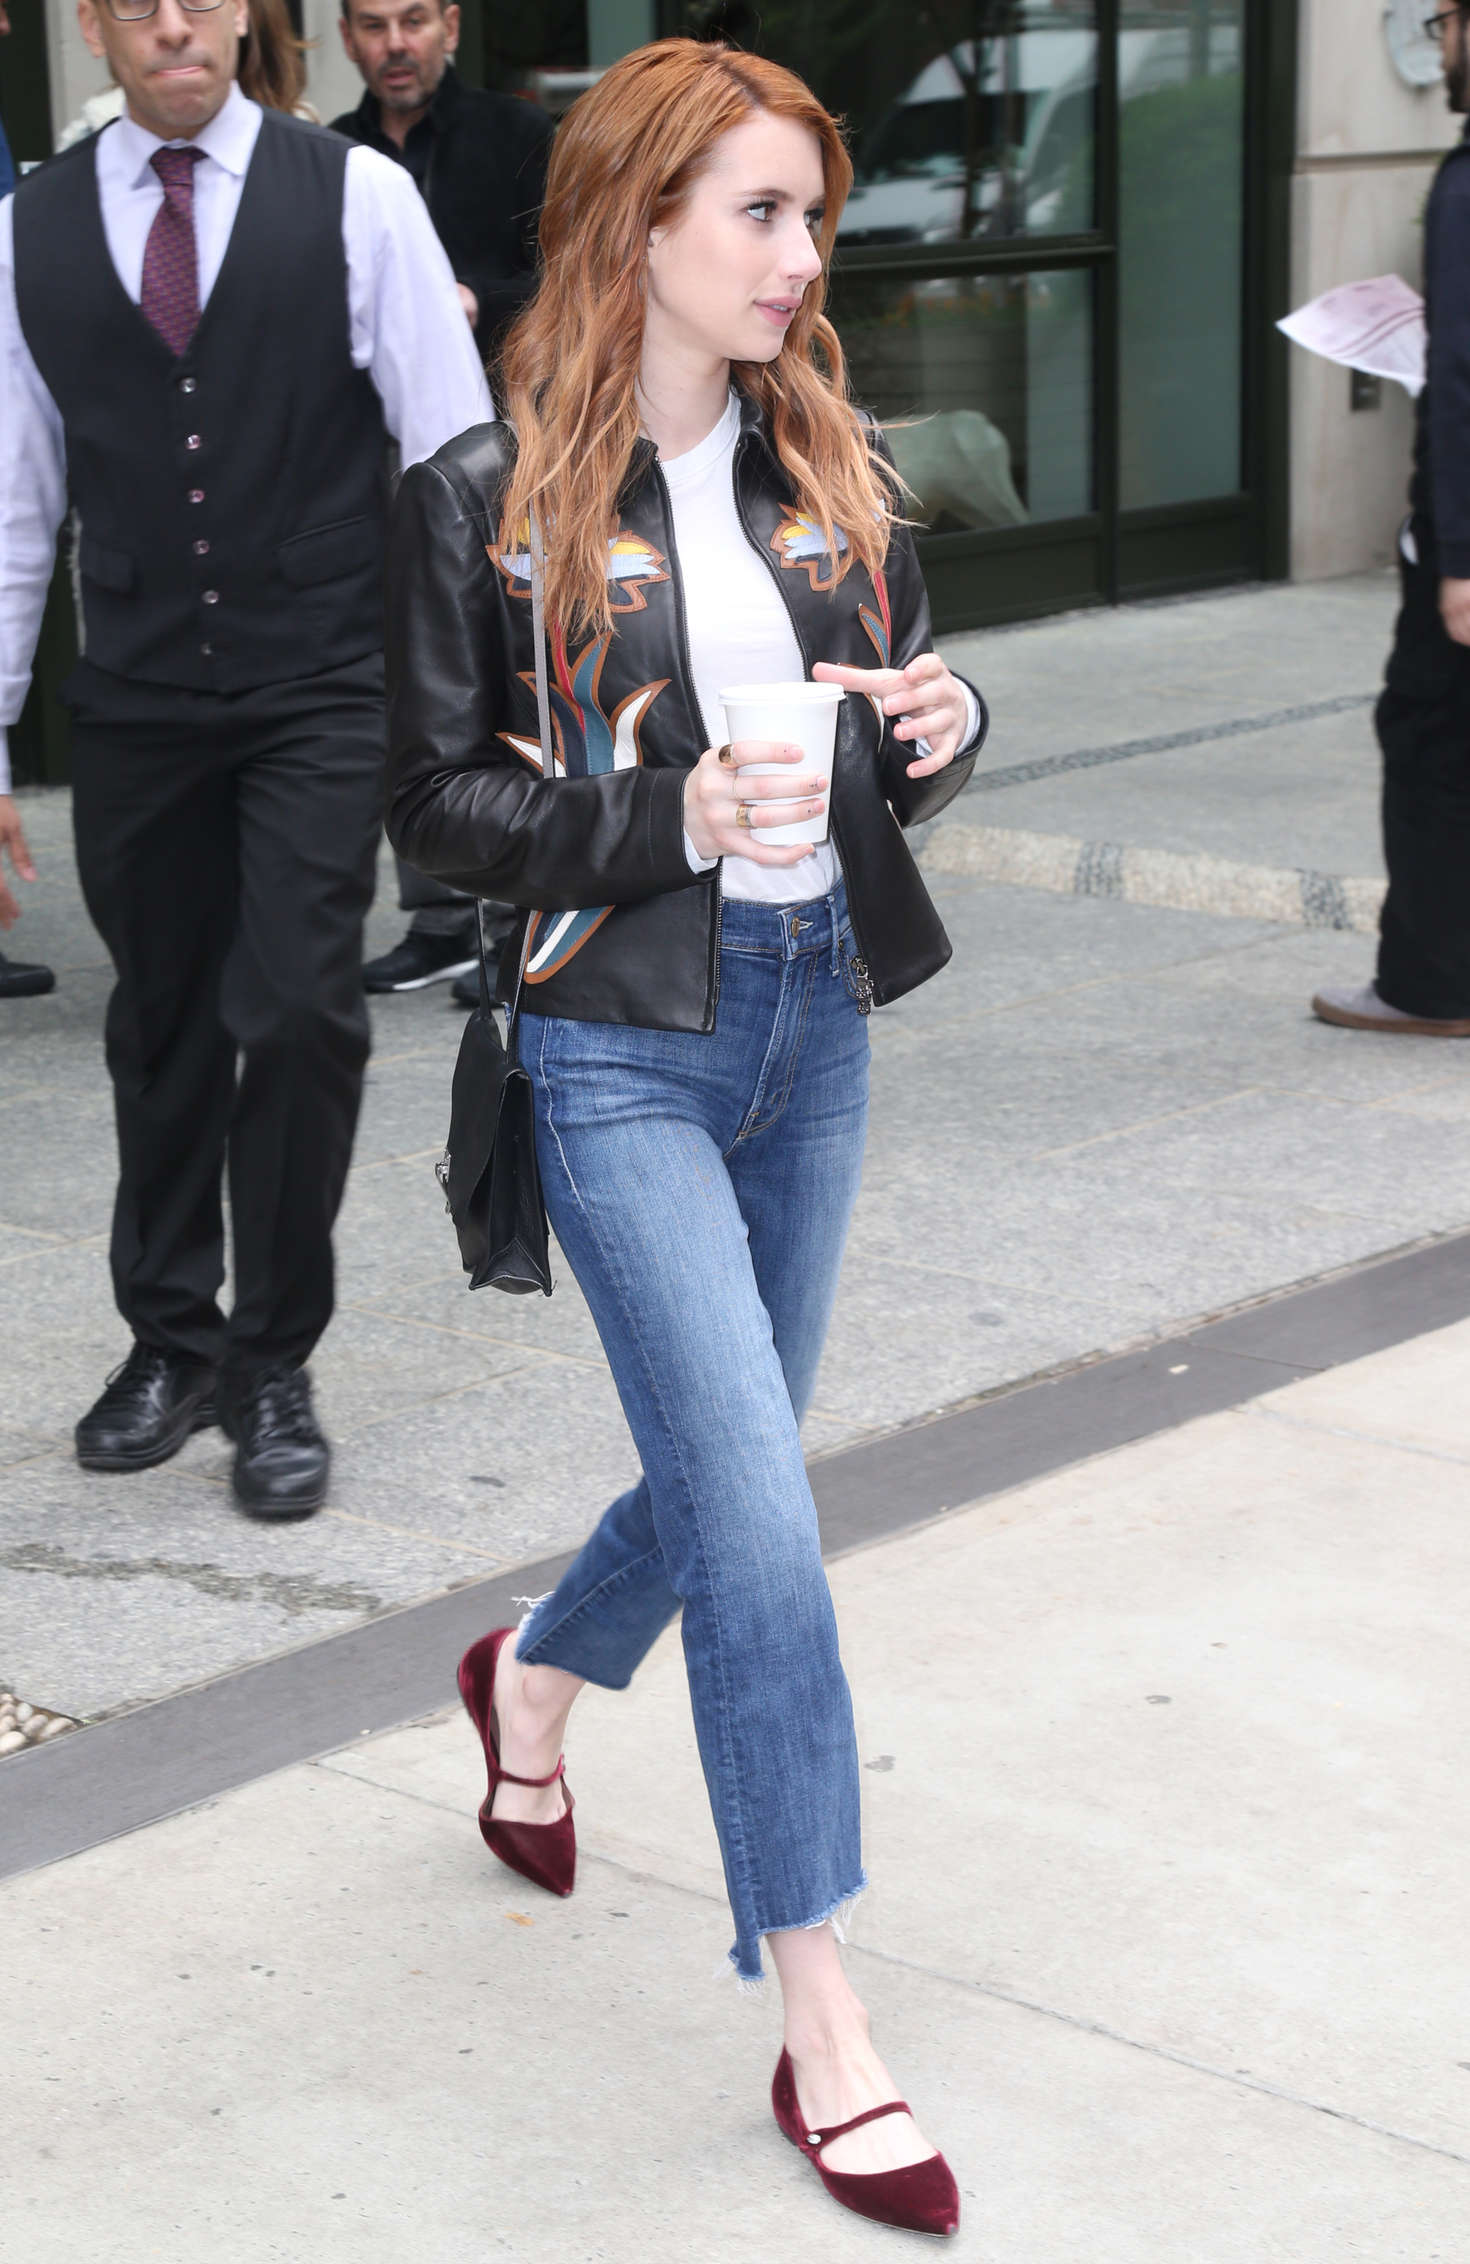 Emma Roberts In Jeans And Leather Jacket 02 Gotceleb